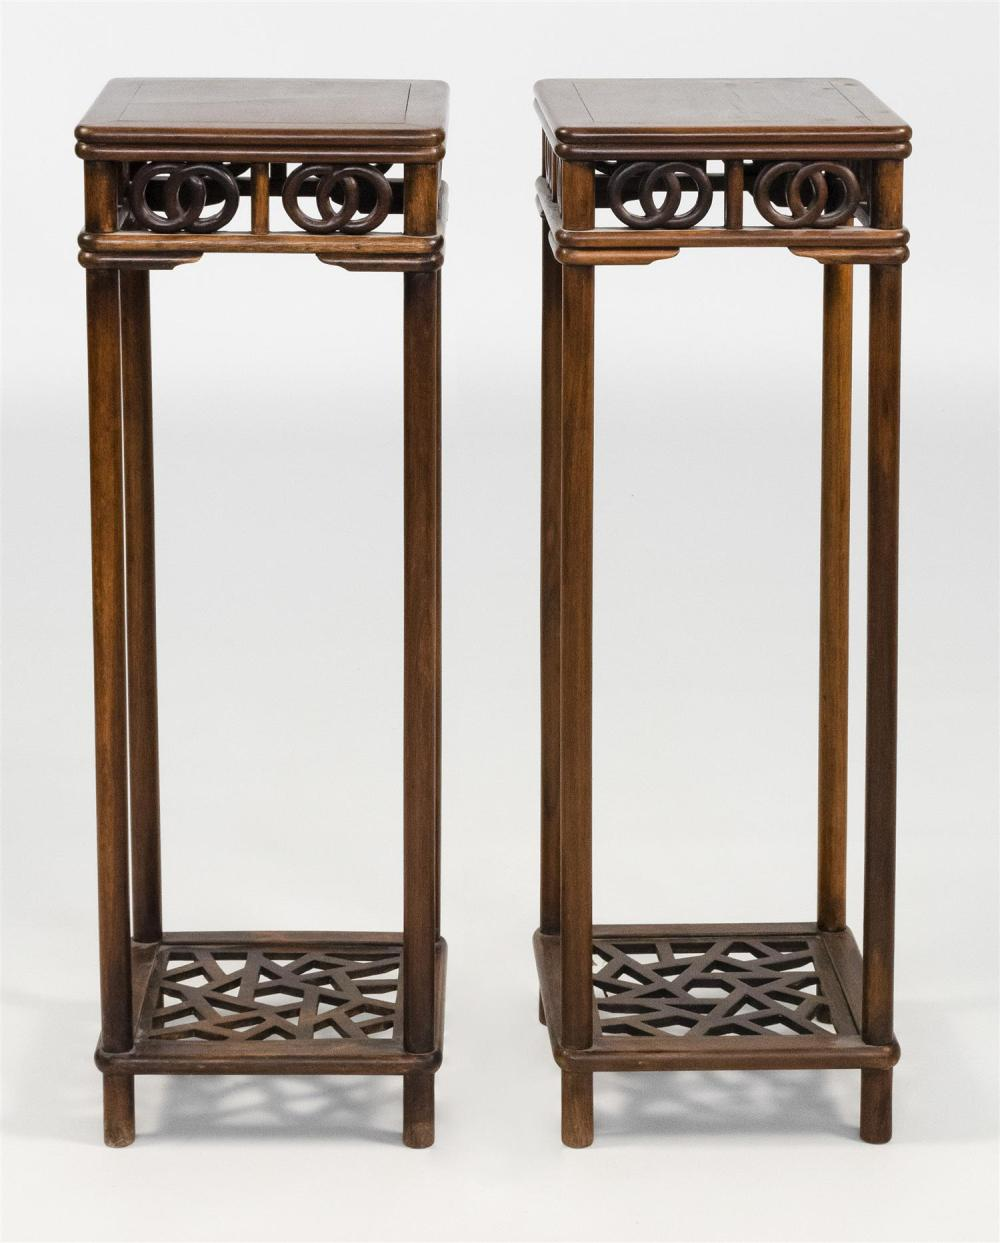 "Lot 1039: PAIR OF CHINESE ELMWOOD TALL STANDS With openwork aprons and cracked ice shelf at foot. Heights 35.5"". Tops 11.75"" x 11.75""."